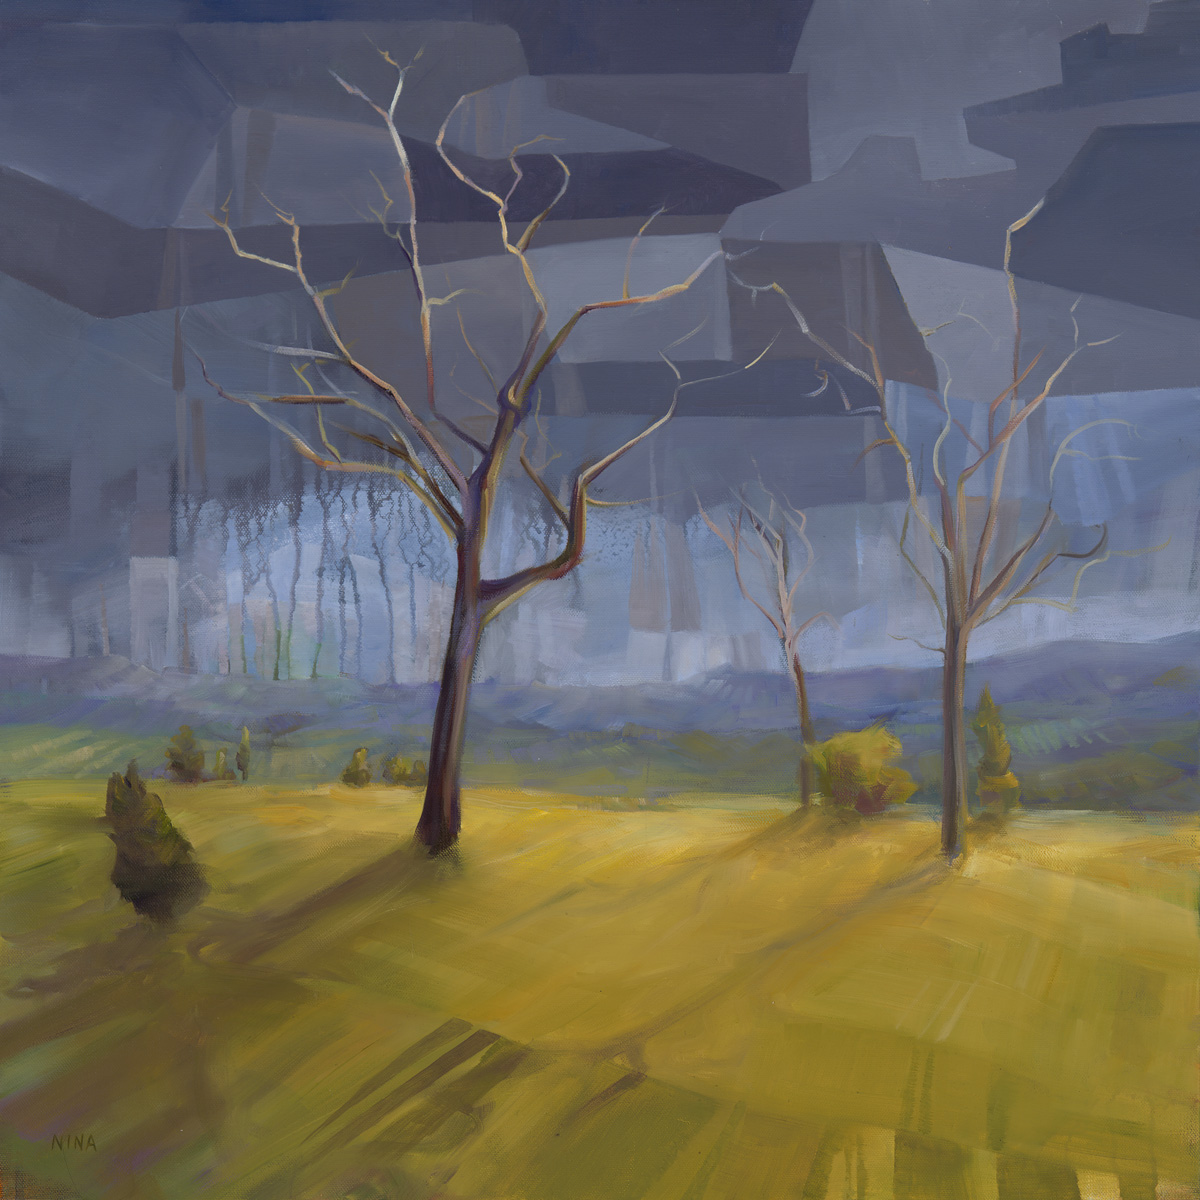 Landscape of fields and a storm on the horizon